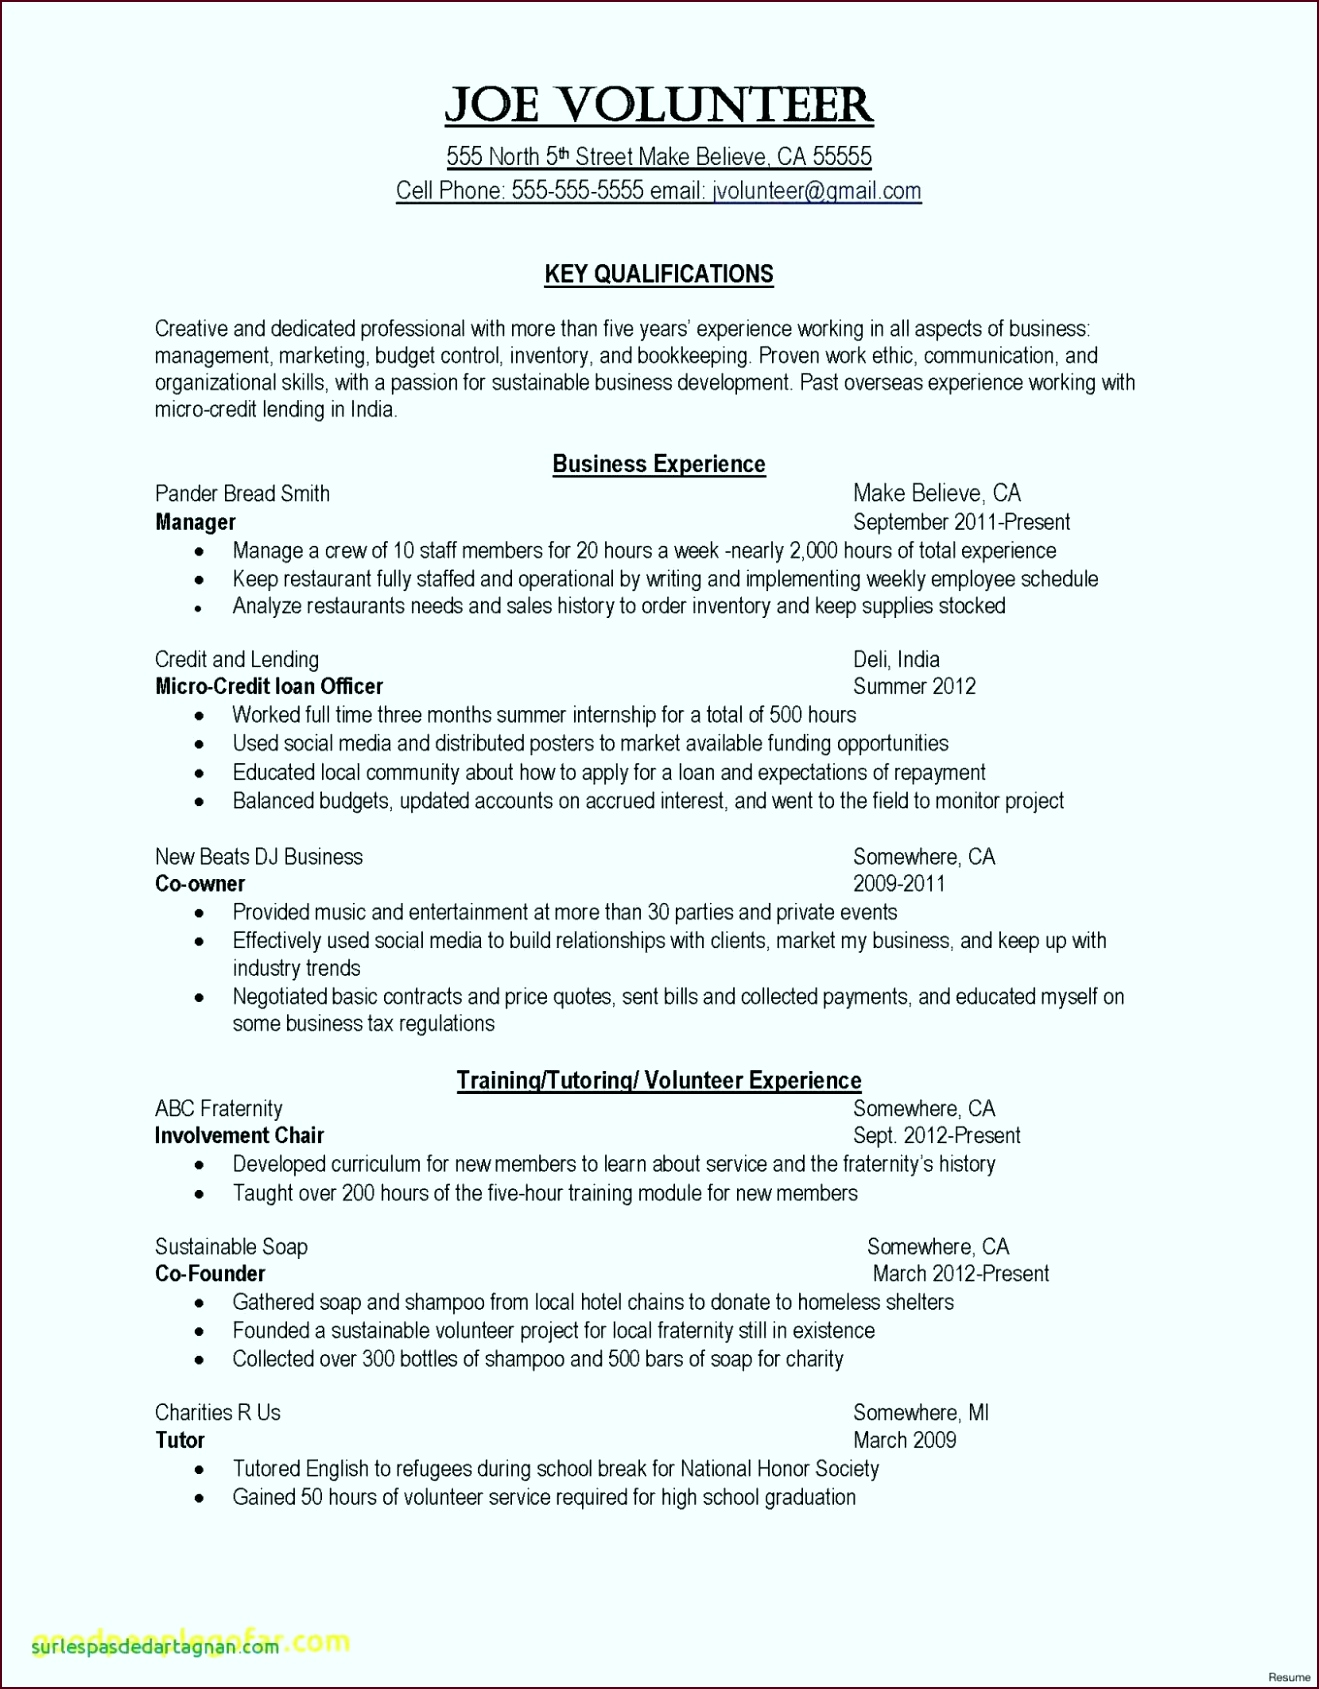 Luxury Free Resume Application Myacereporter Accounting Biography Examples os8 aeooo